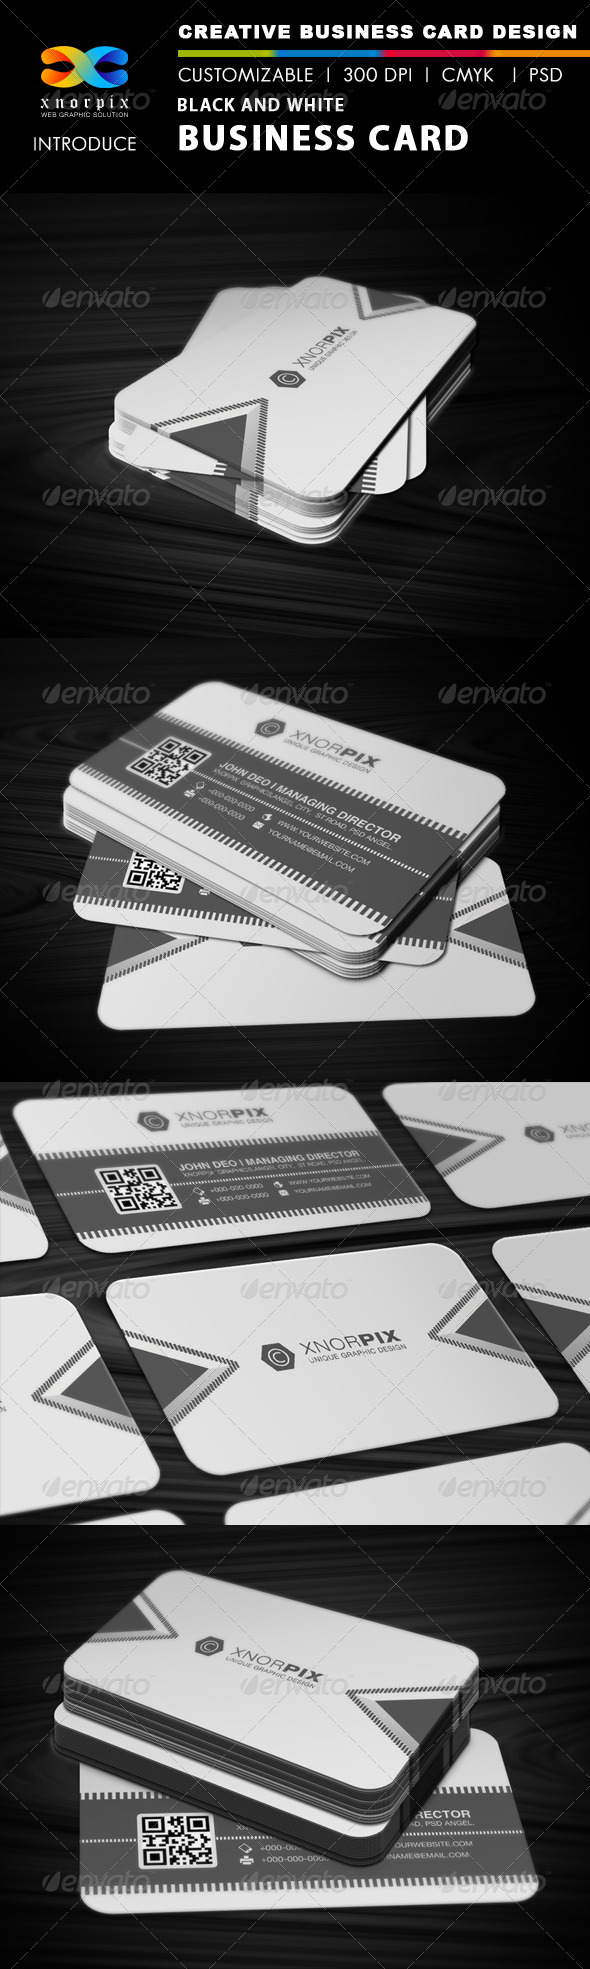 Black and White Business Card - Corporate Business Cards